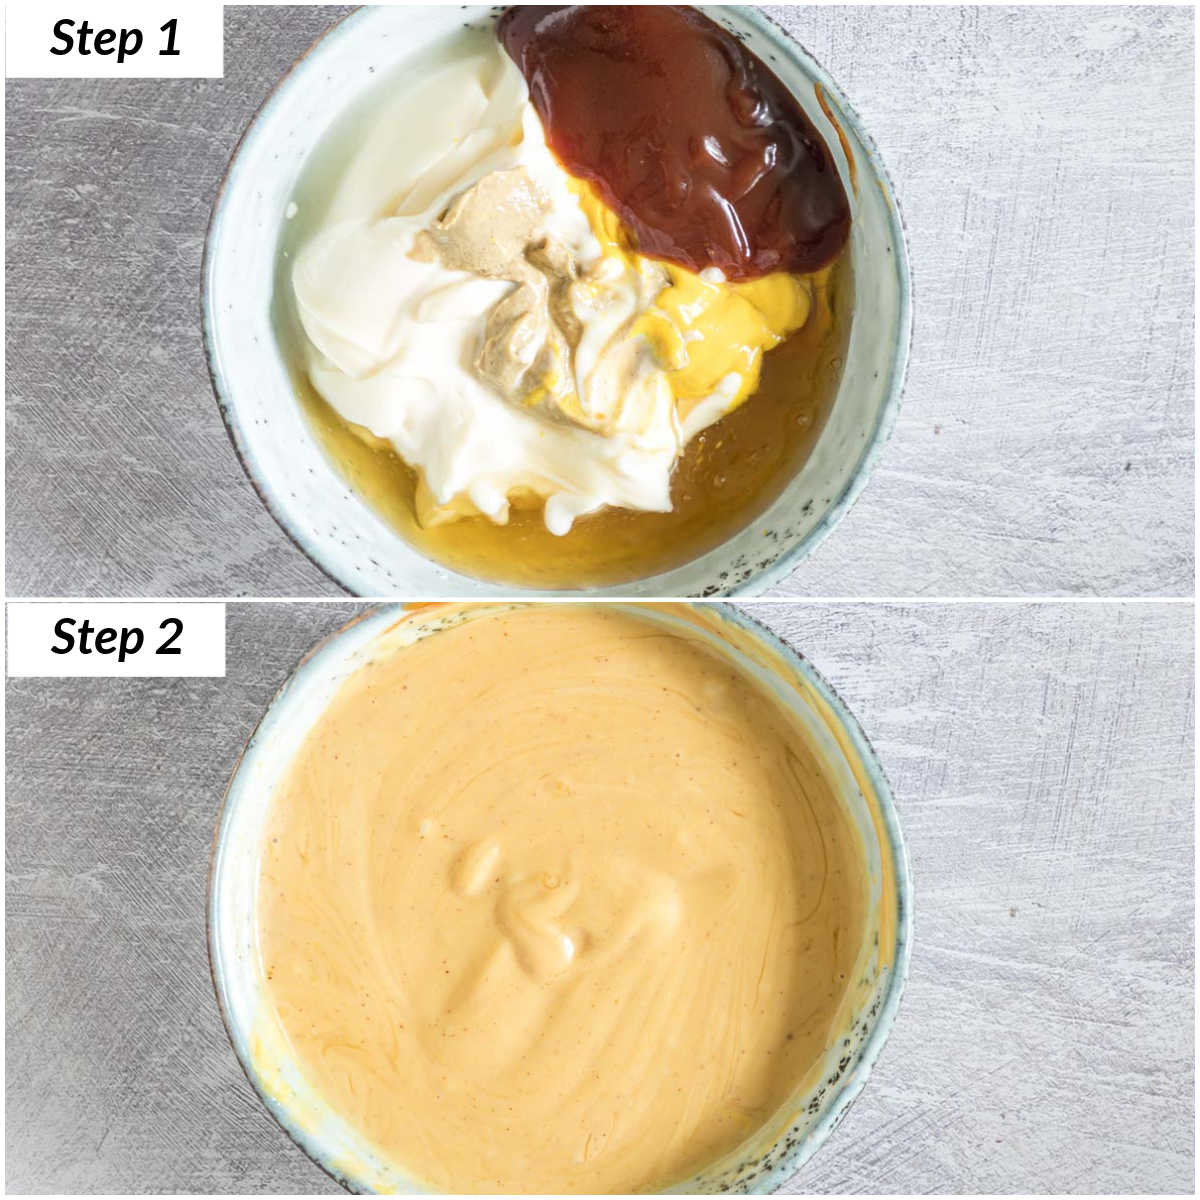 image collage showing the steps for making homemade chick fil a sauce